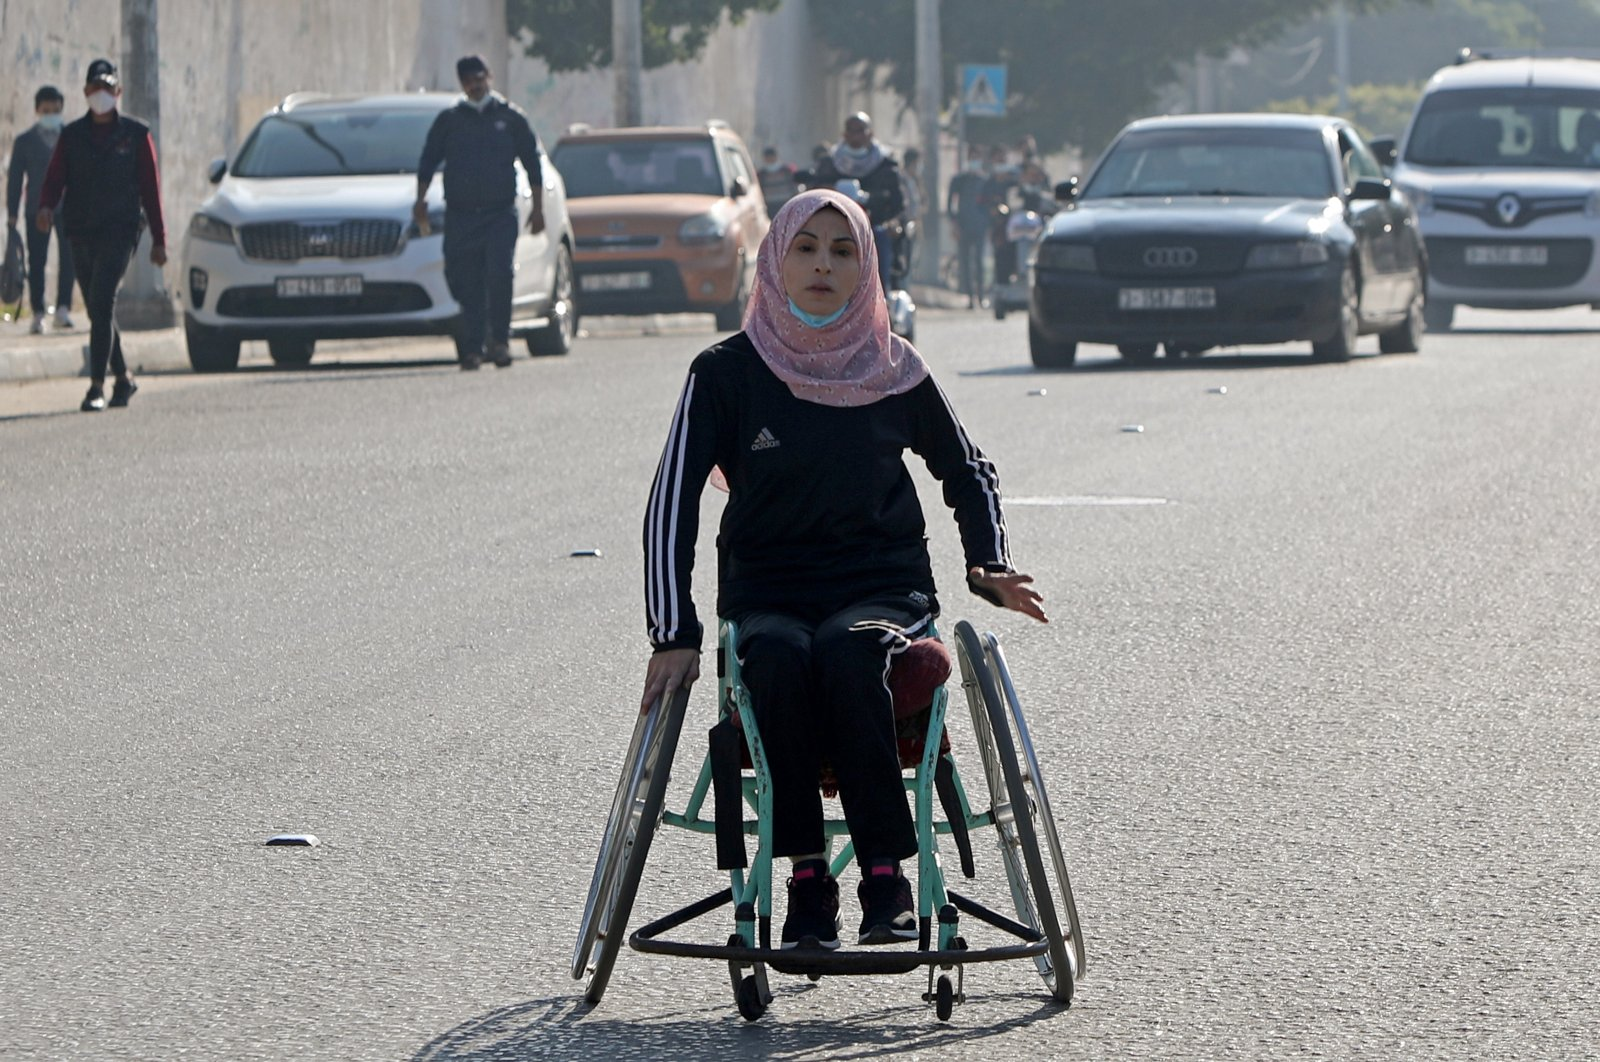 A disabled Palestinian competes during a local race on International Day of Persons with Disabilities, Gaza City, Dec. 3, 2020. (REUTERS Photo)